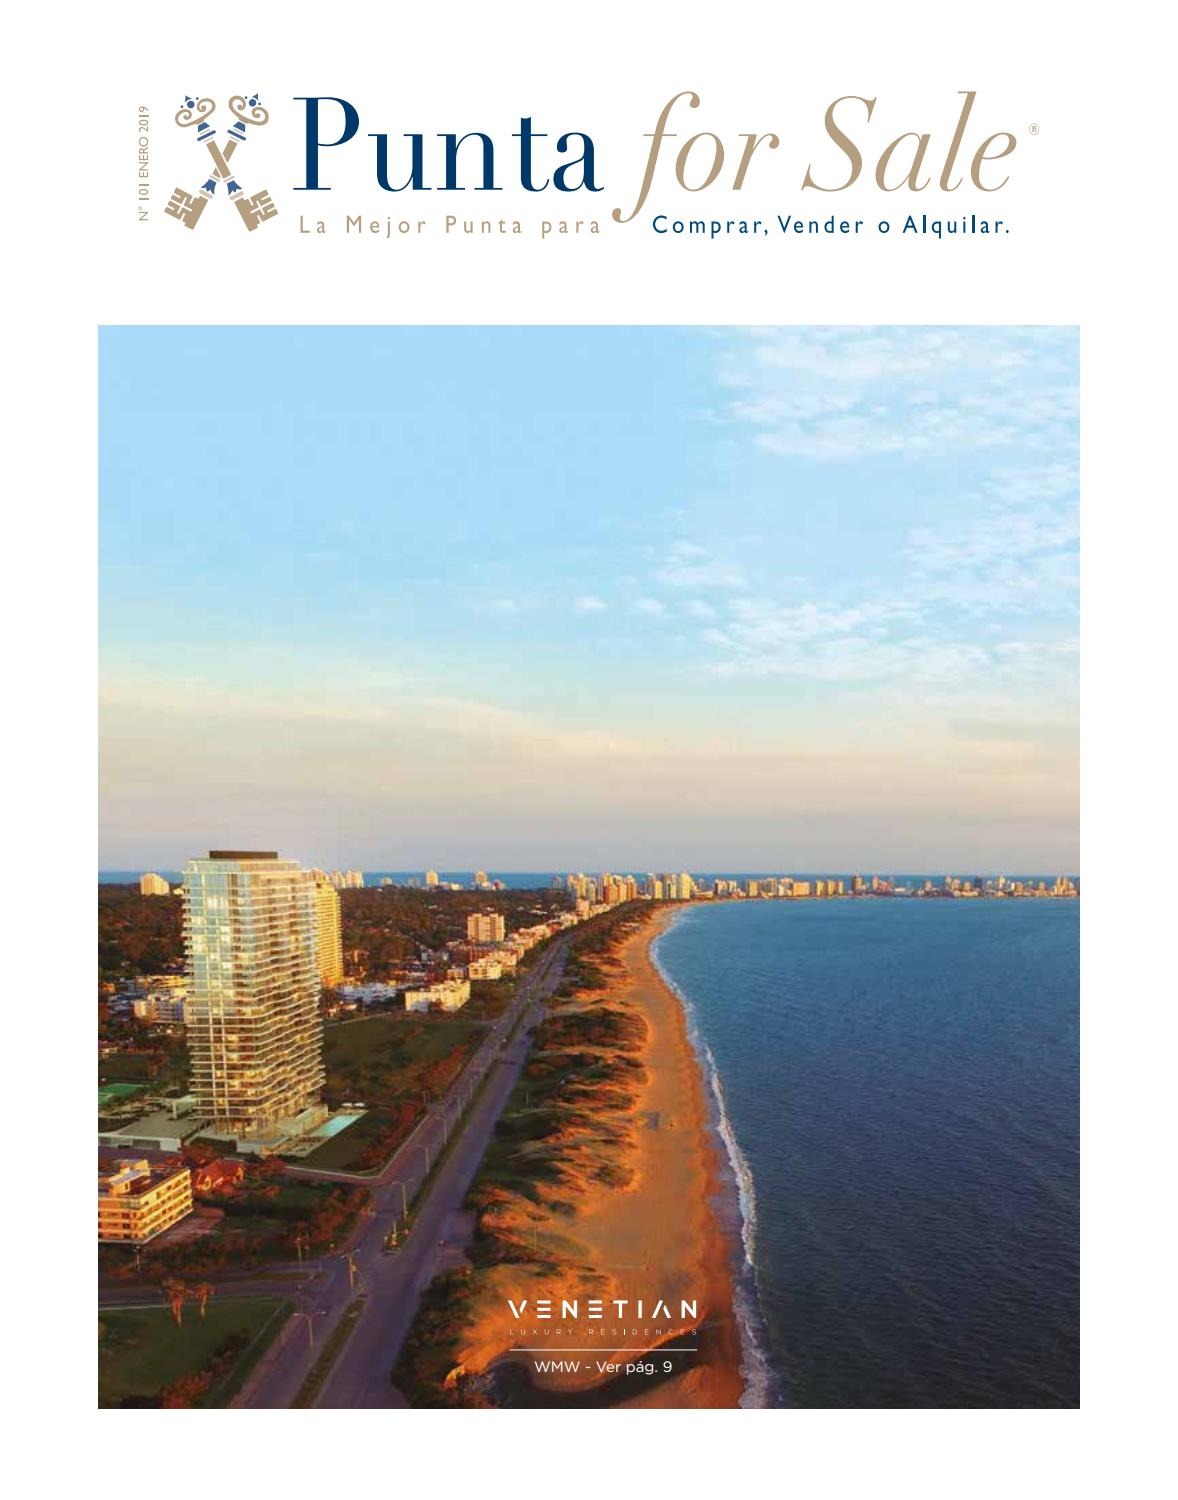 Revista de Real Estate Punta For Sale, edición # 101 Enero 2019